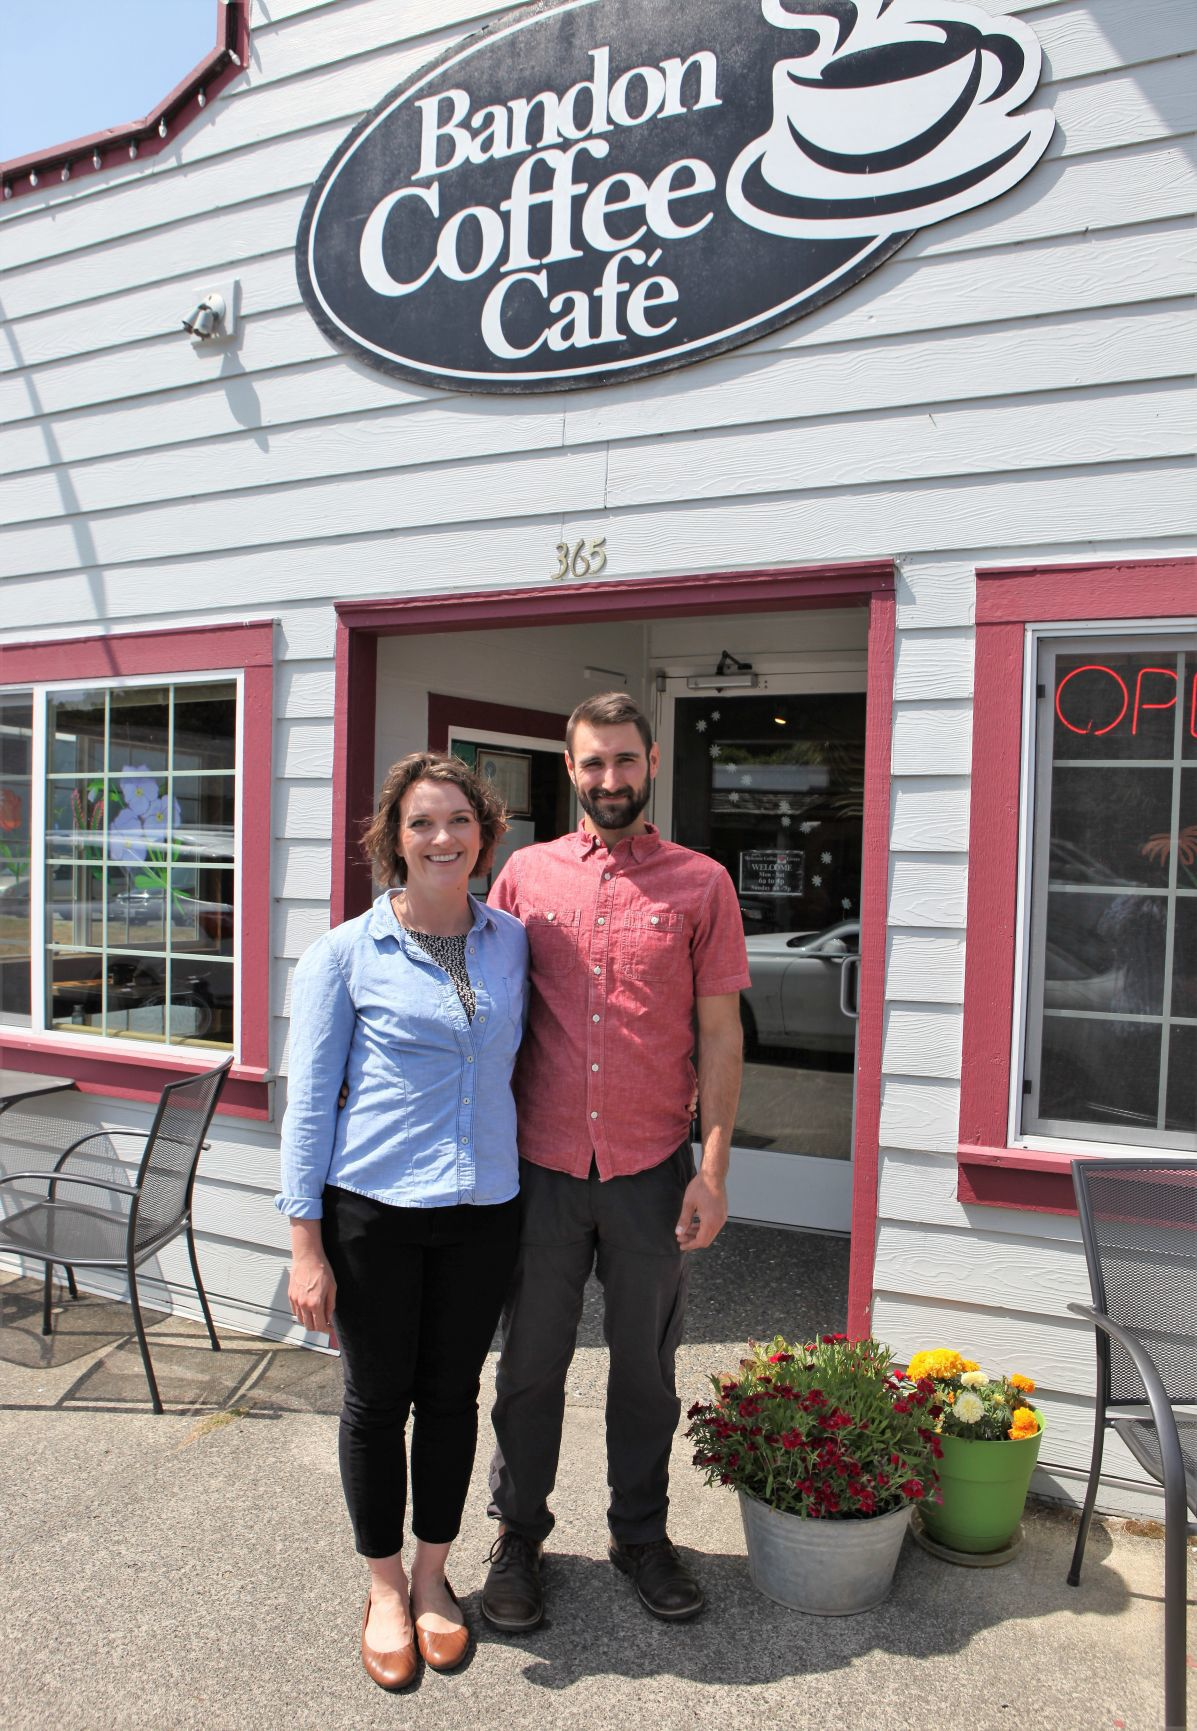 New owners of Bandon Coffee Cafe